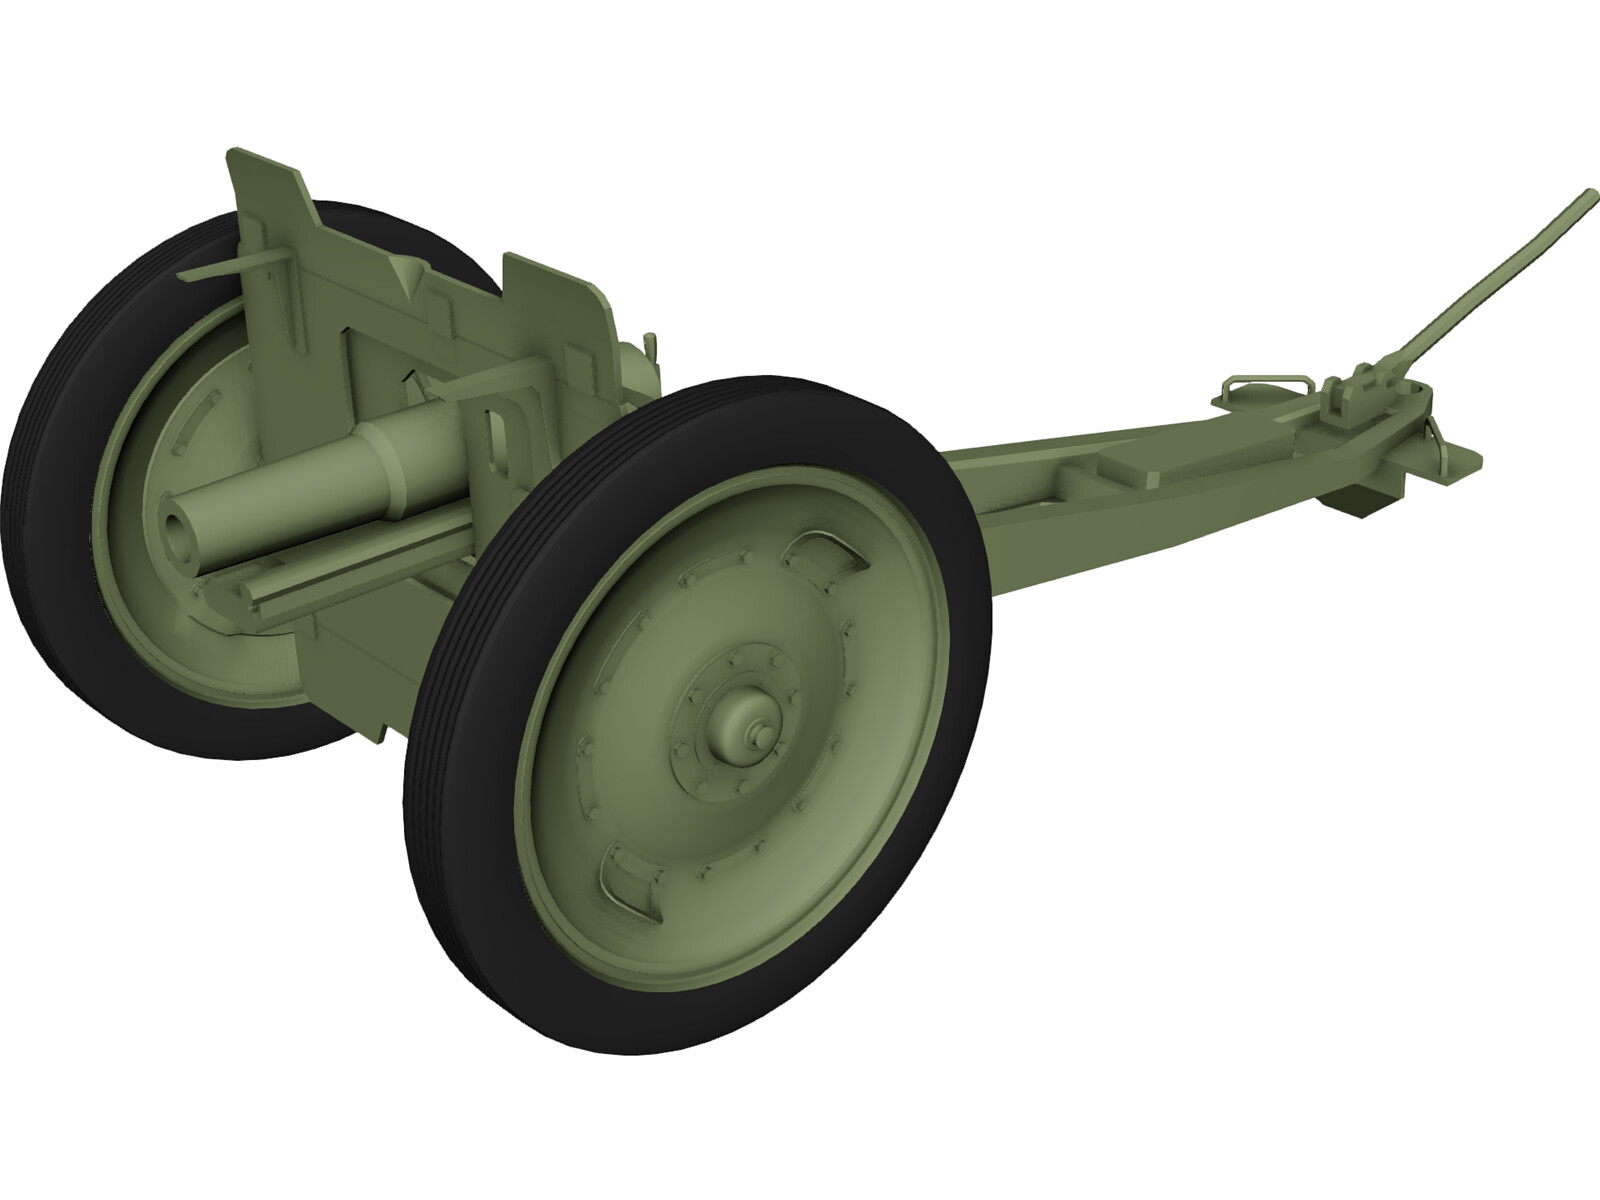 M1927 76,2-mm Regimental Gun 3D Model